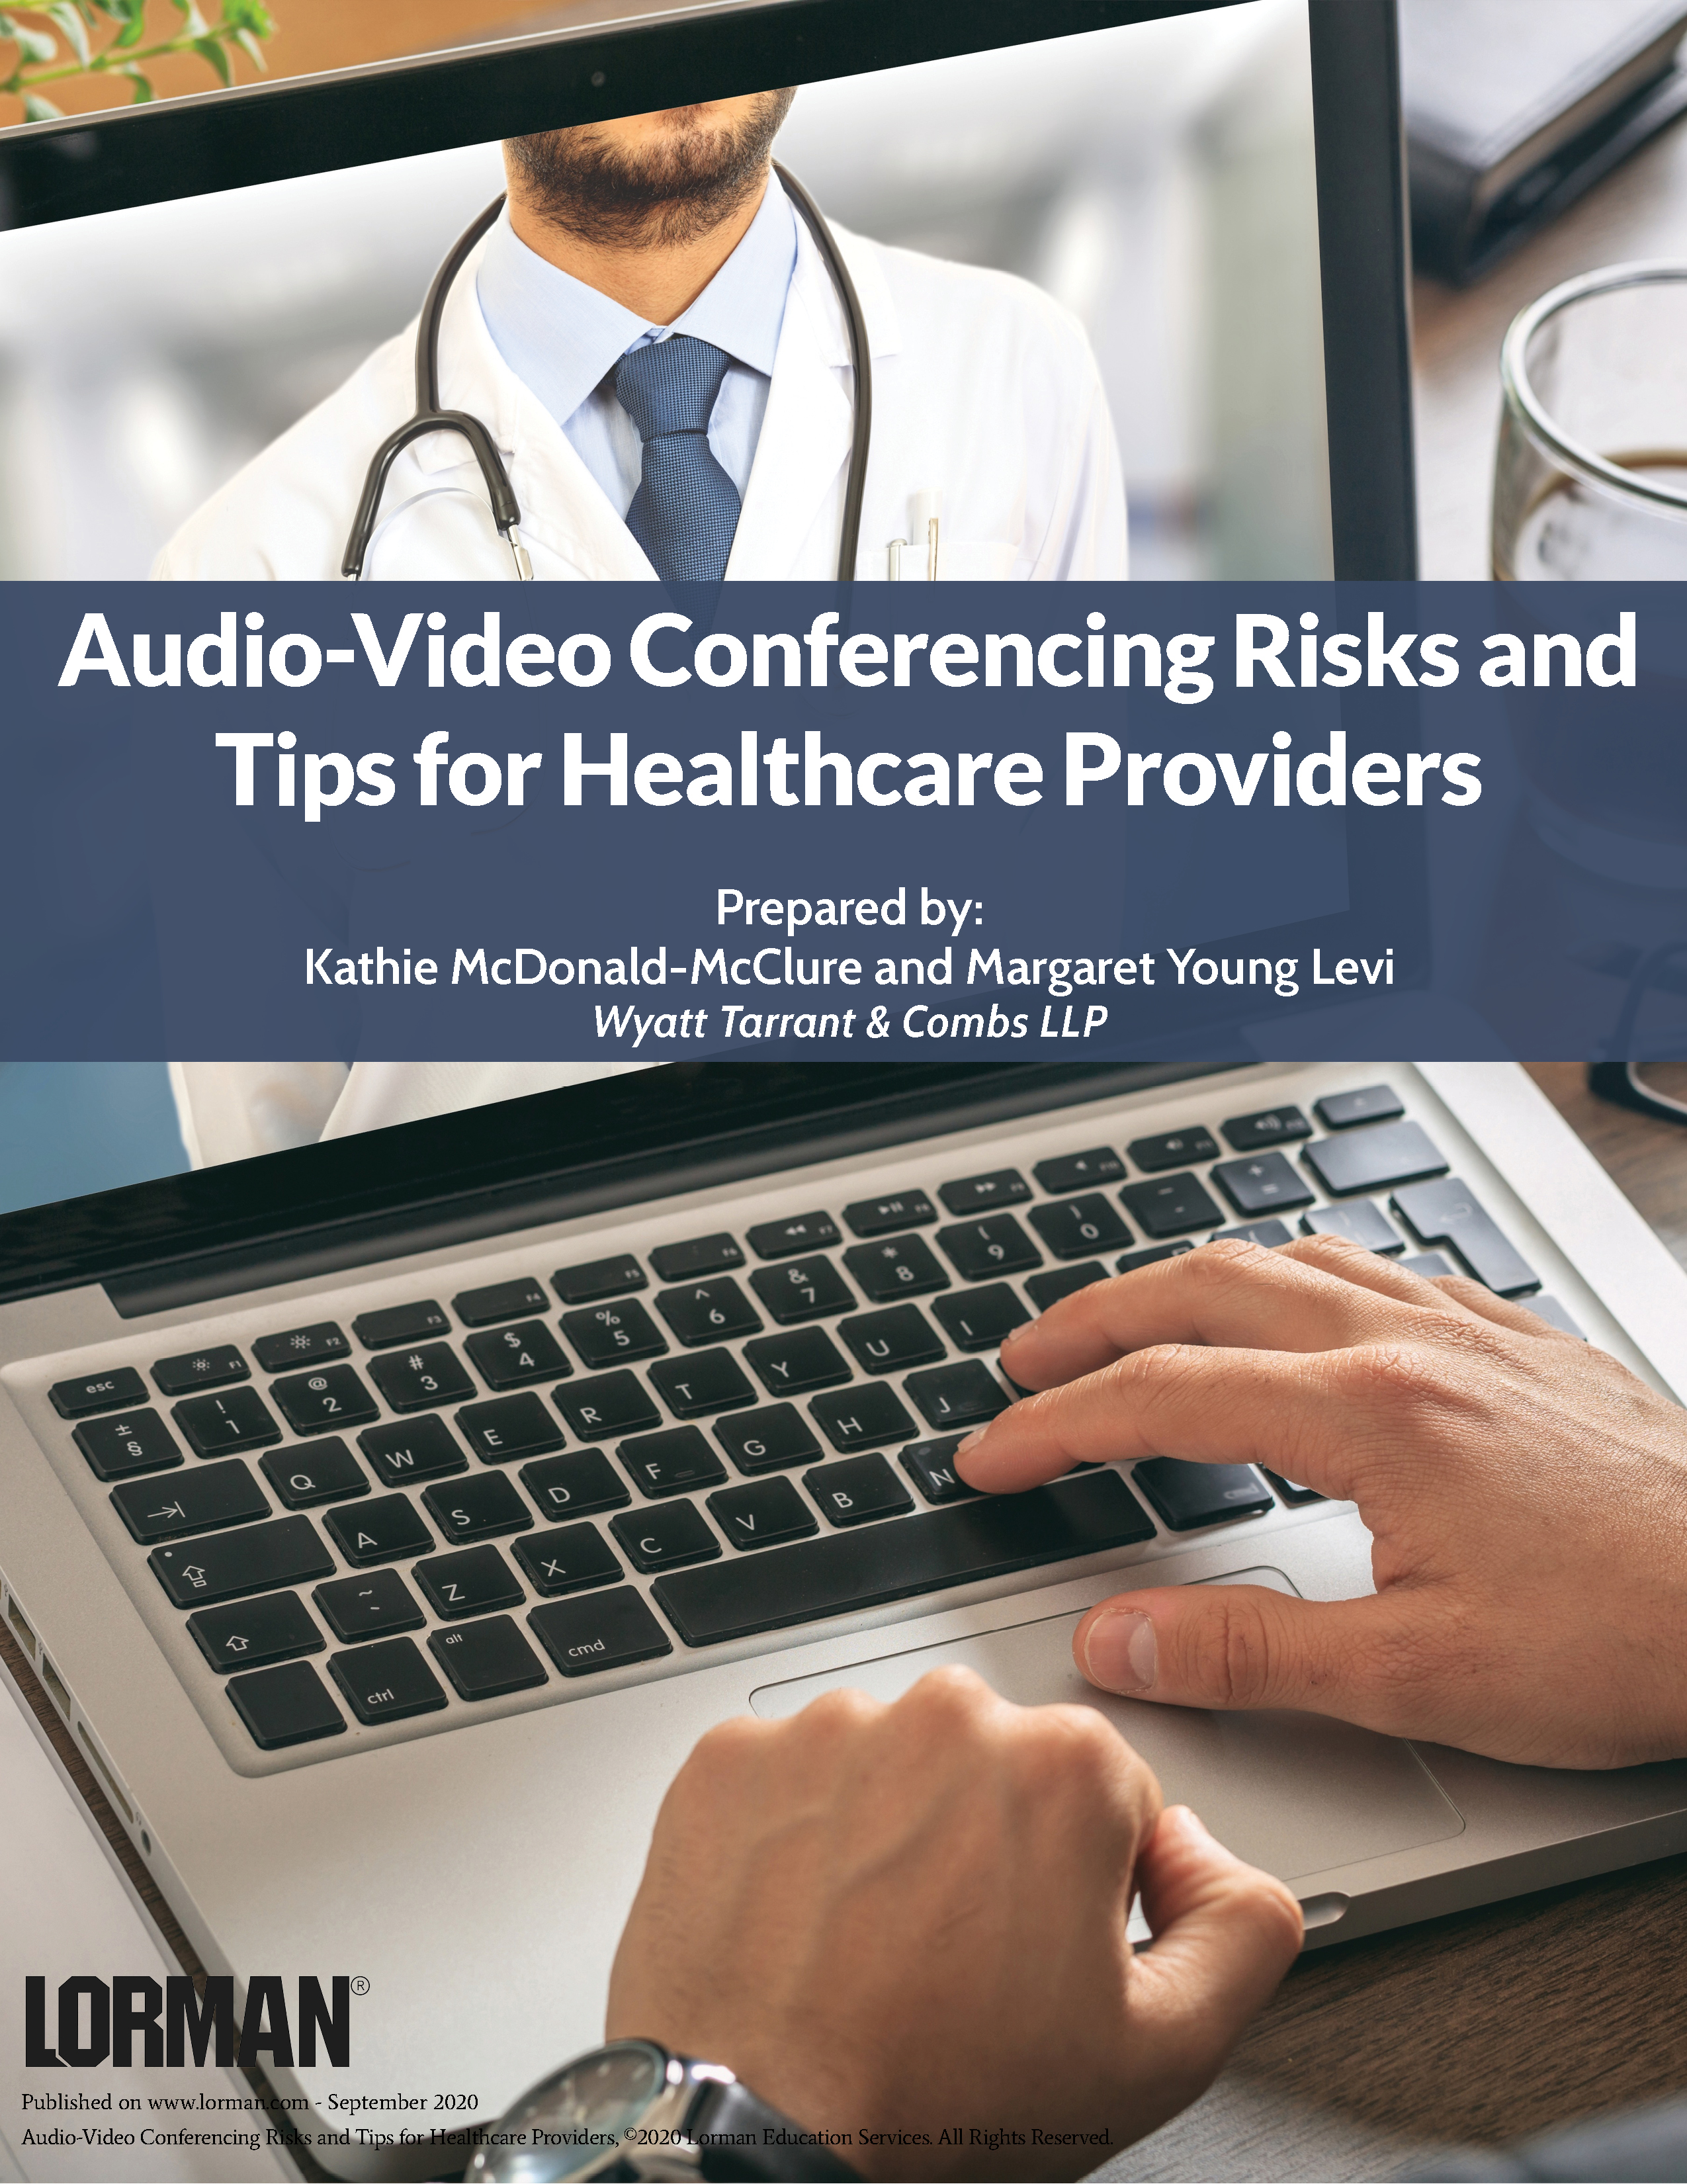 Audio-Video Conferencing Risks and Tips for Healthcare Providers